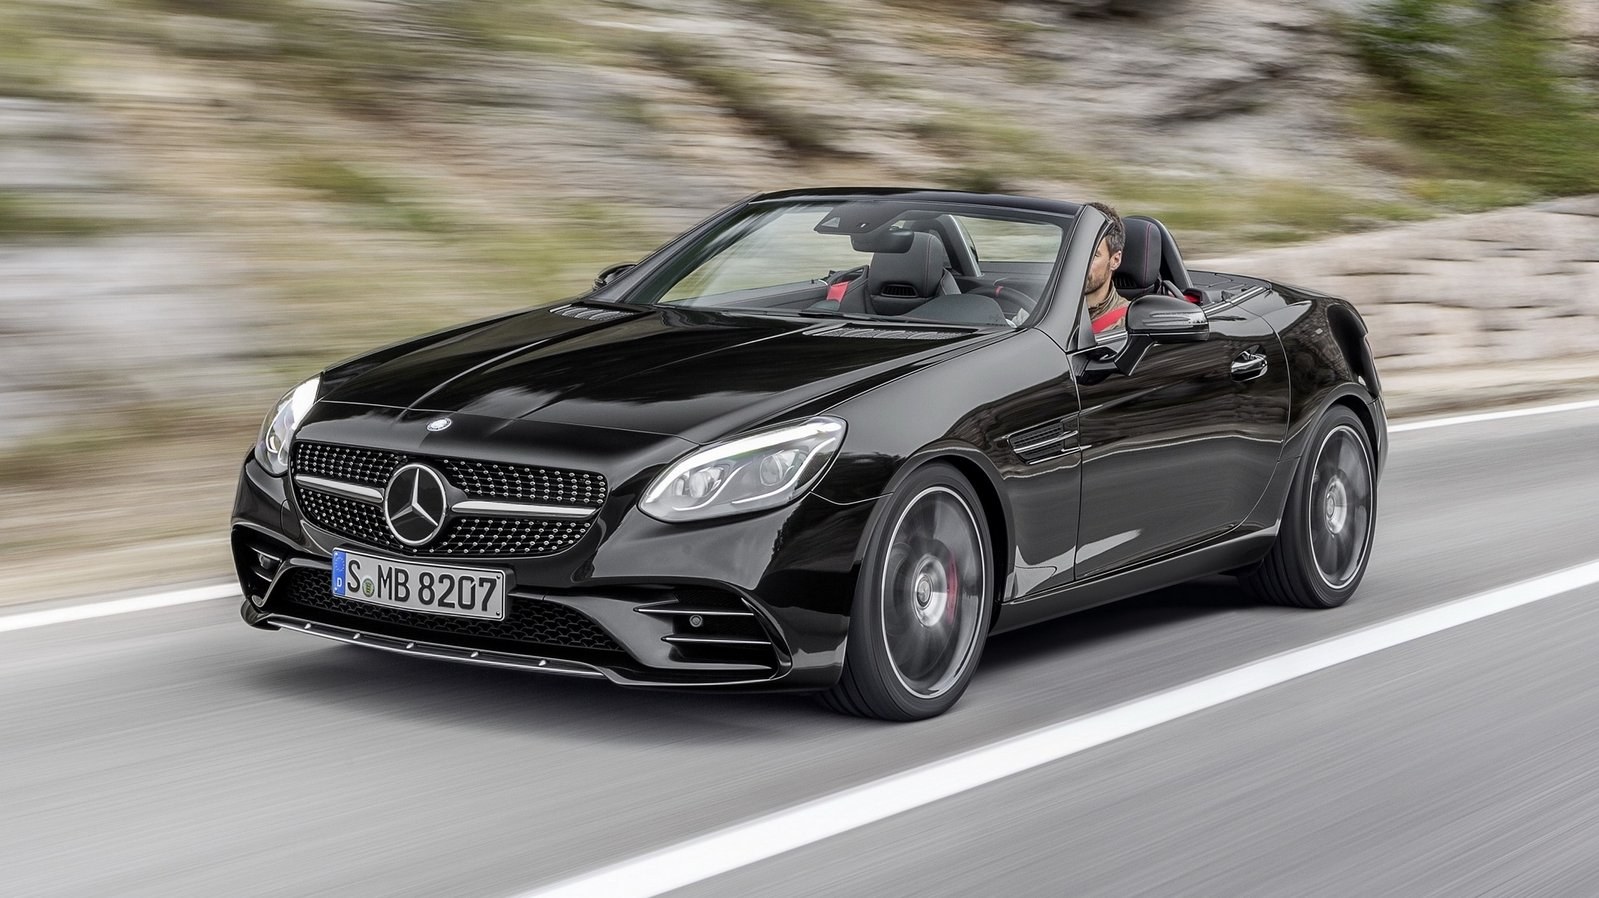 2017 mercedes amg slc43 top speed. Black Bedroom Furniture Sets. Home Design Ideas